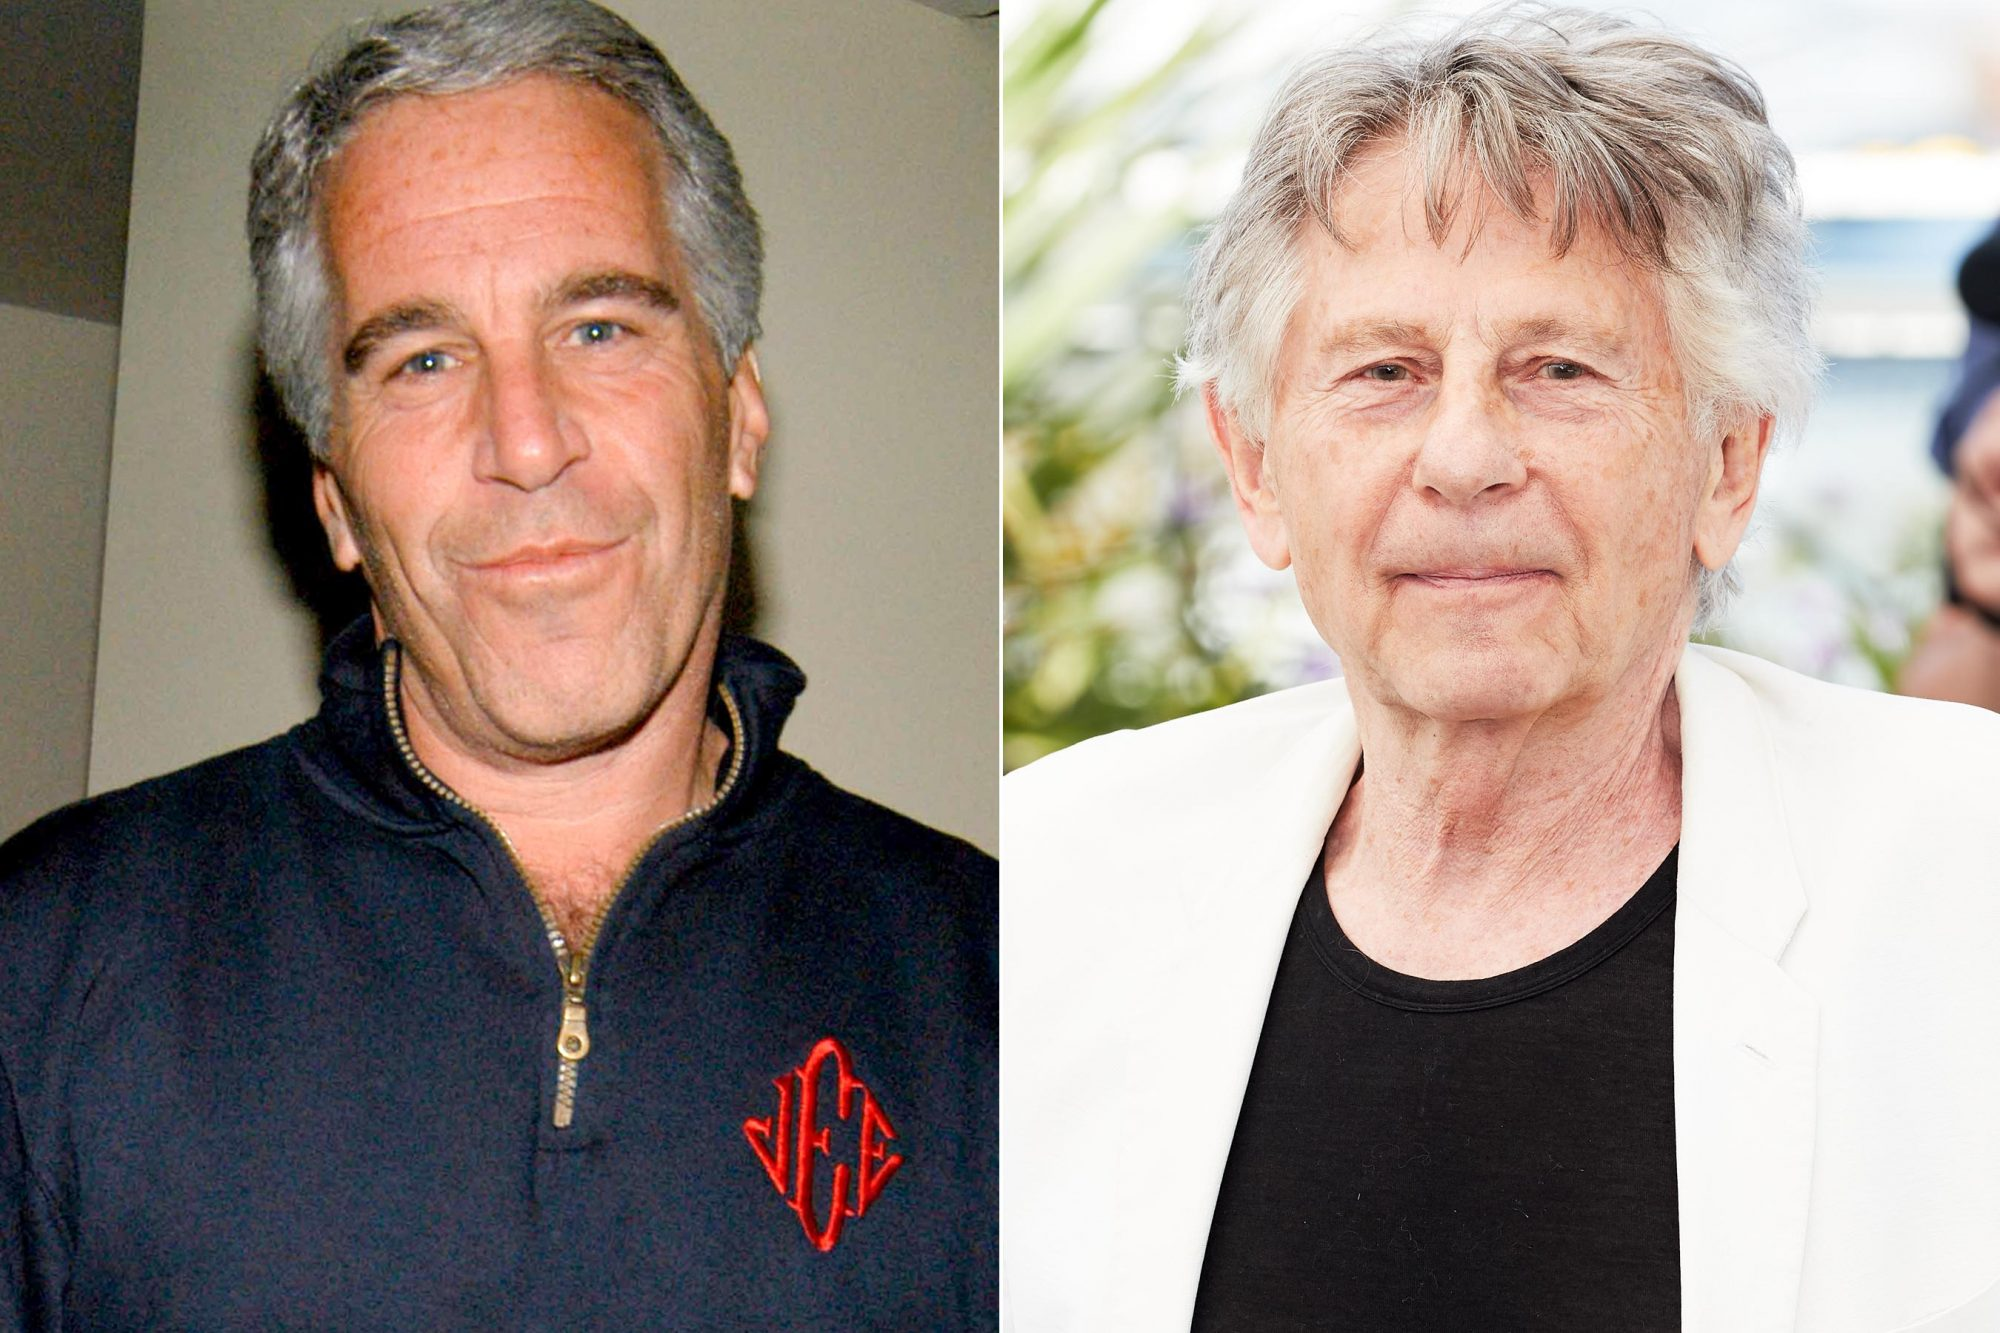 """NEW YORK, NY - MAY 18: Jeffrey Epstein attends Launch of RADAR MAGAZINE at Hotel QT on May 18, 2005. (Photo by Neil Rasmus/Patrick McMullan via Getty Images) CANNES, FRANCE - MAY 27: Director Roman Polanski attends the """"Based On A True Story"""" photocall during the 70th annual Cannes Film Festival at Palais des Festivals on May 27, 2017 in Cannes, France. (Photo by Oleg Nikishin/Epsilon/Getty Images)"""